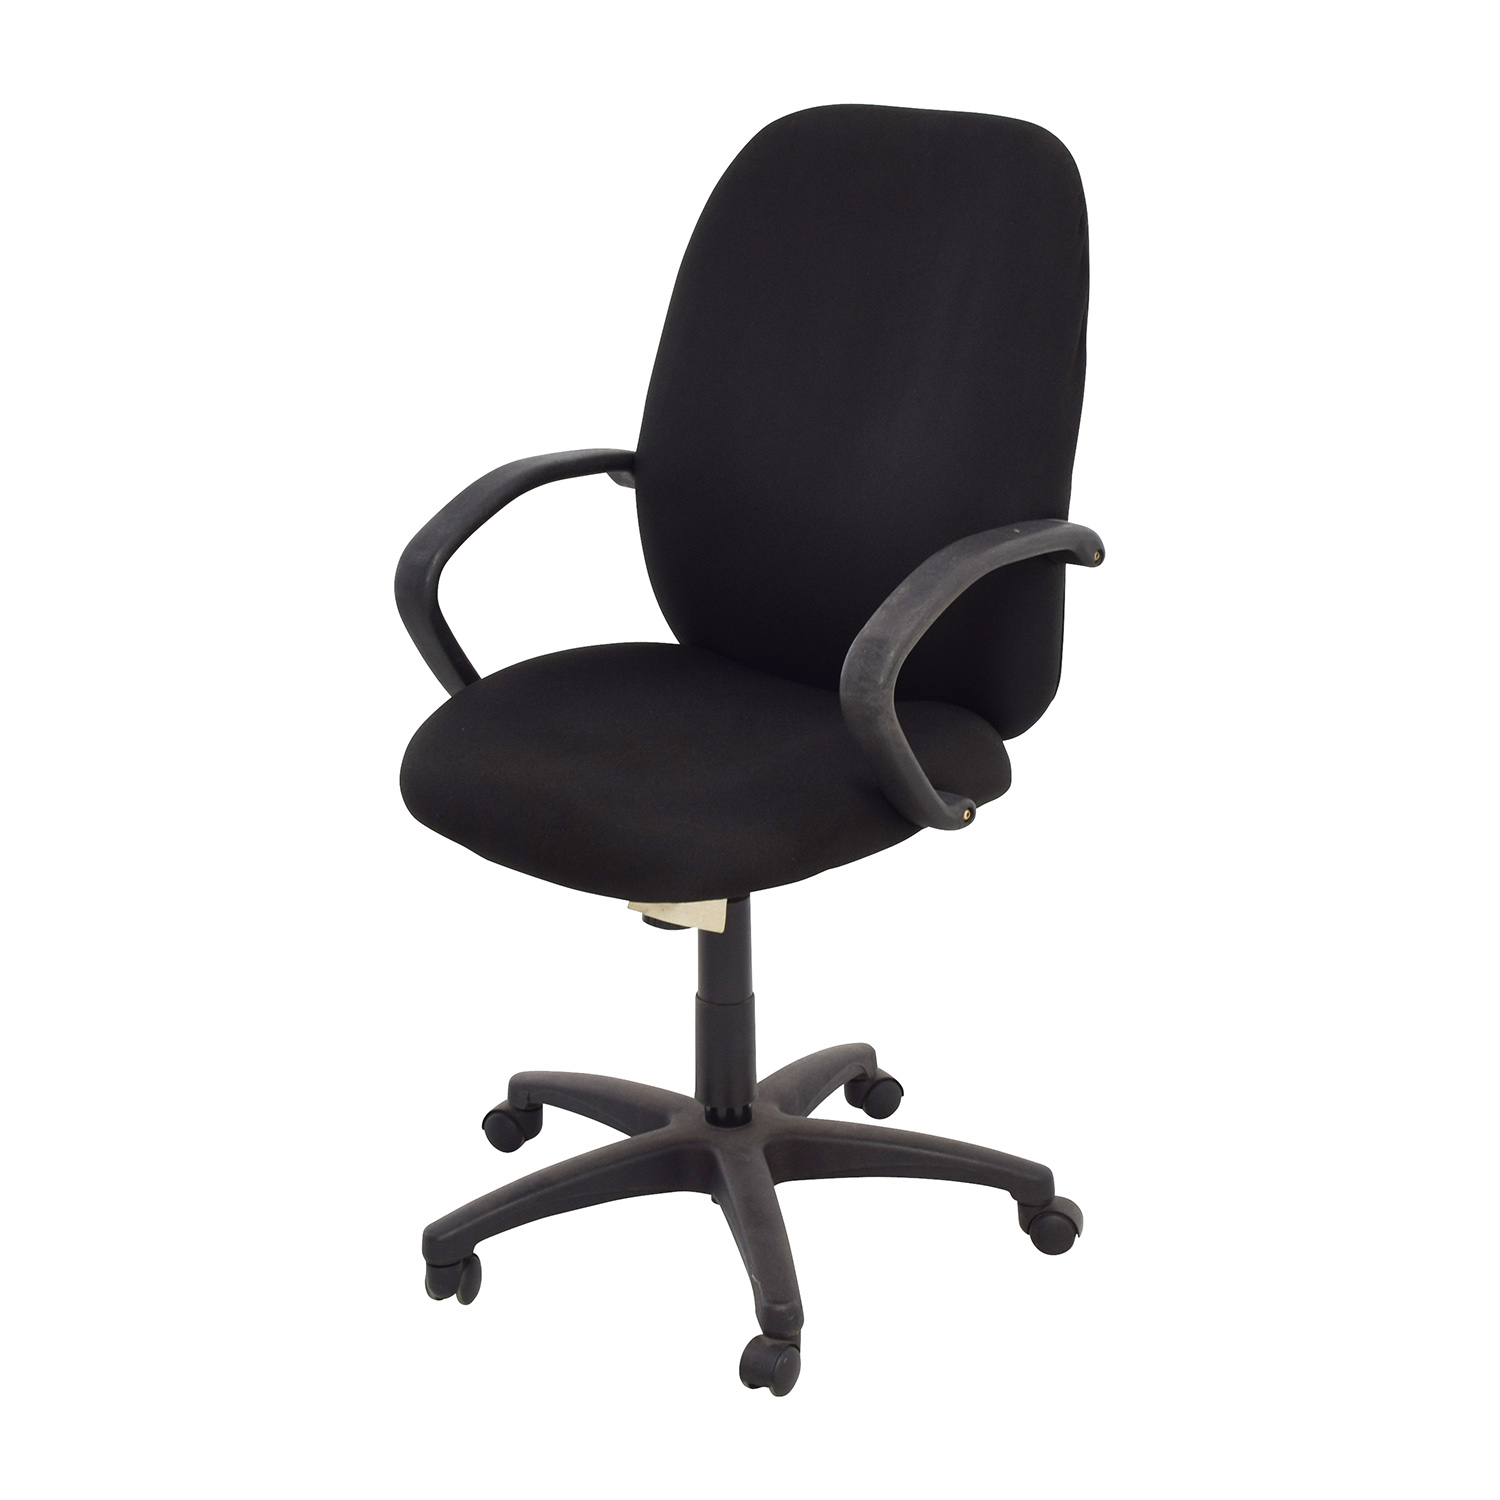 Black Swivel Office Chair / Chairs